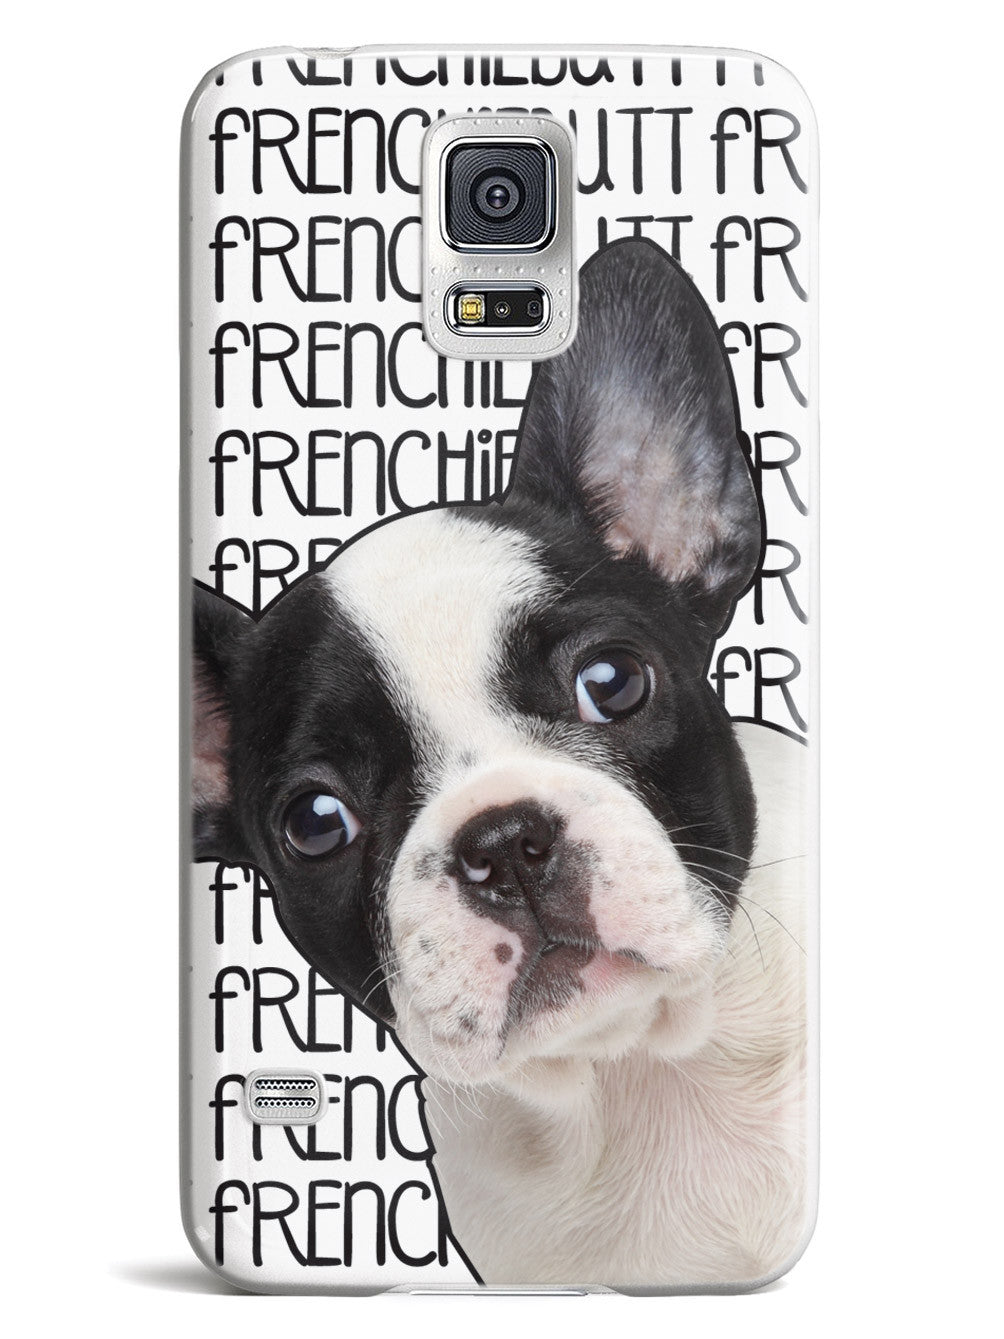 Frenchiebutt - French Bulldog Case